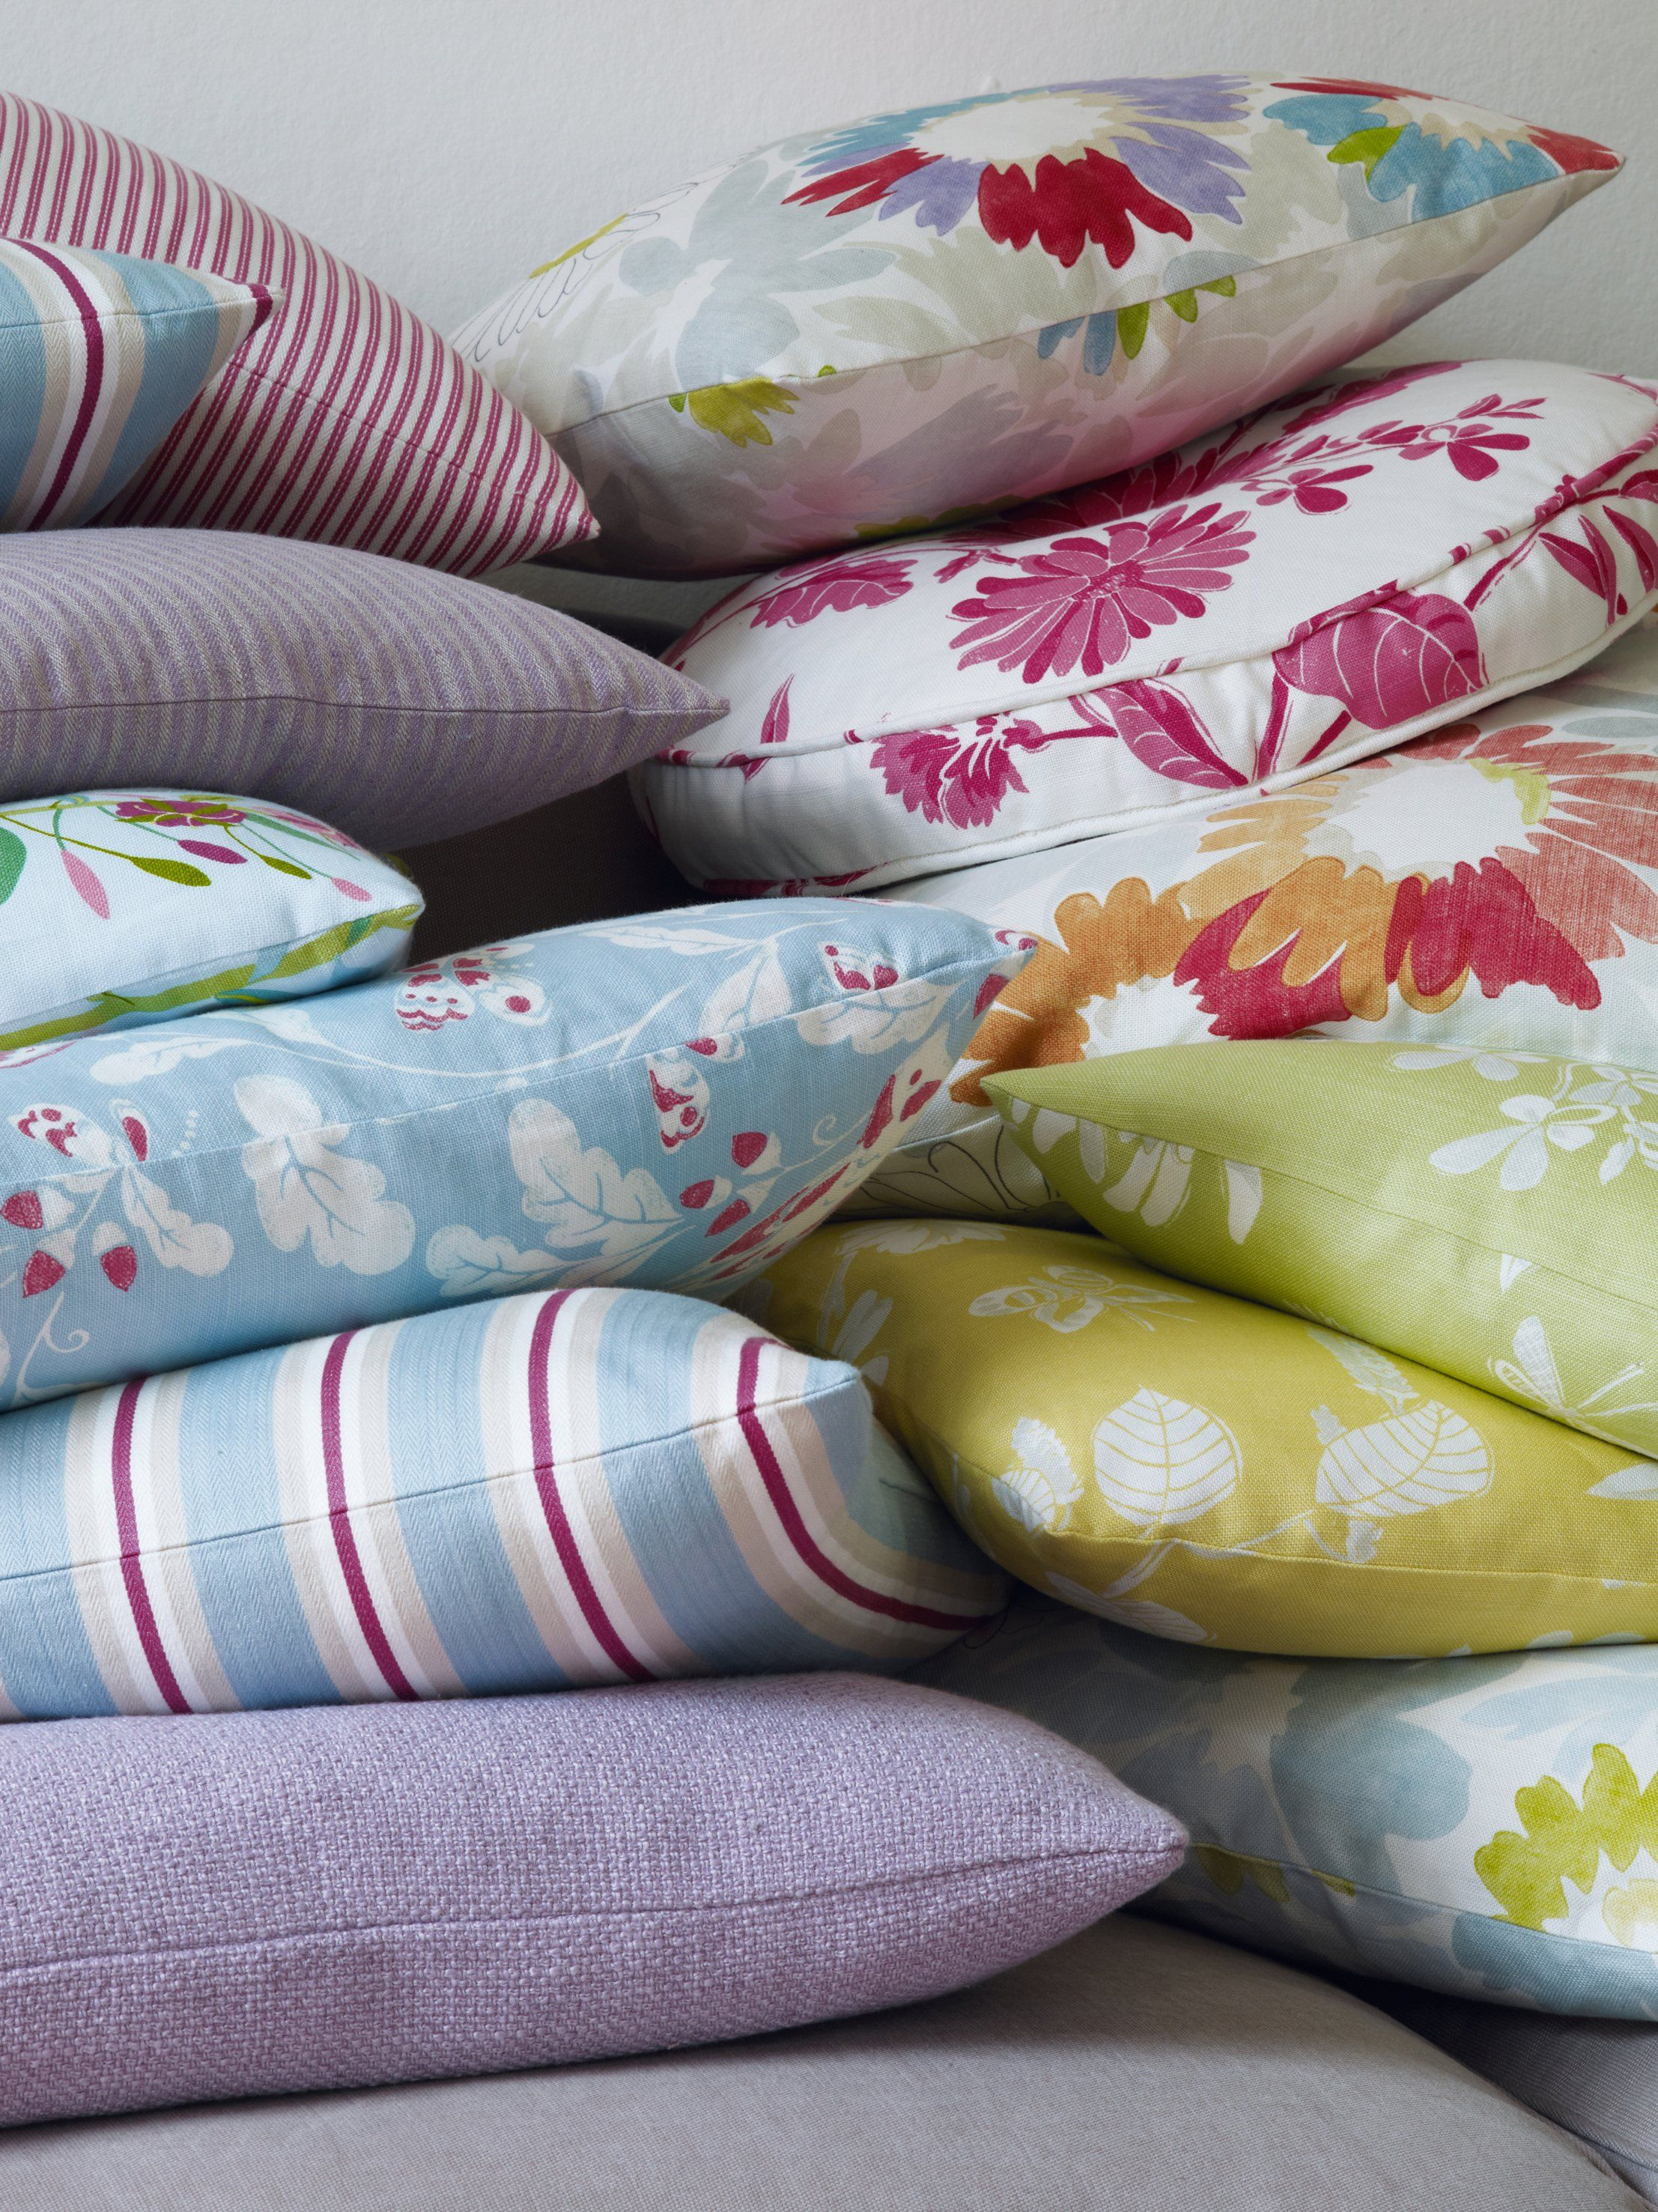 Fabrics from the Brightwood Collection by Jane Churchill